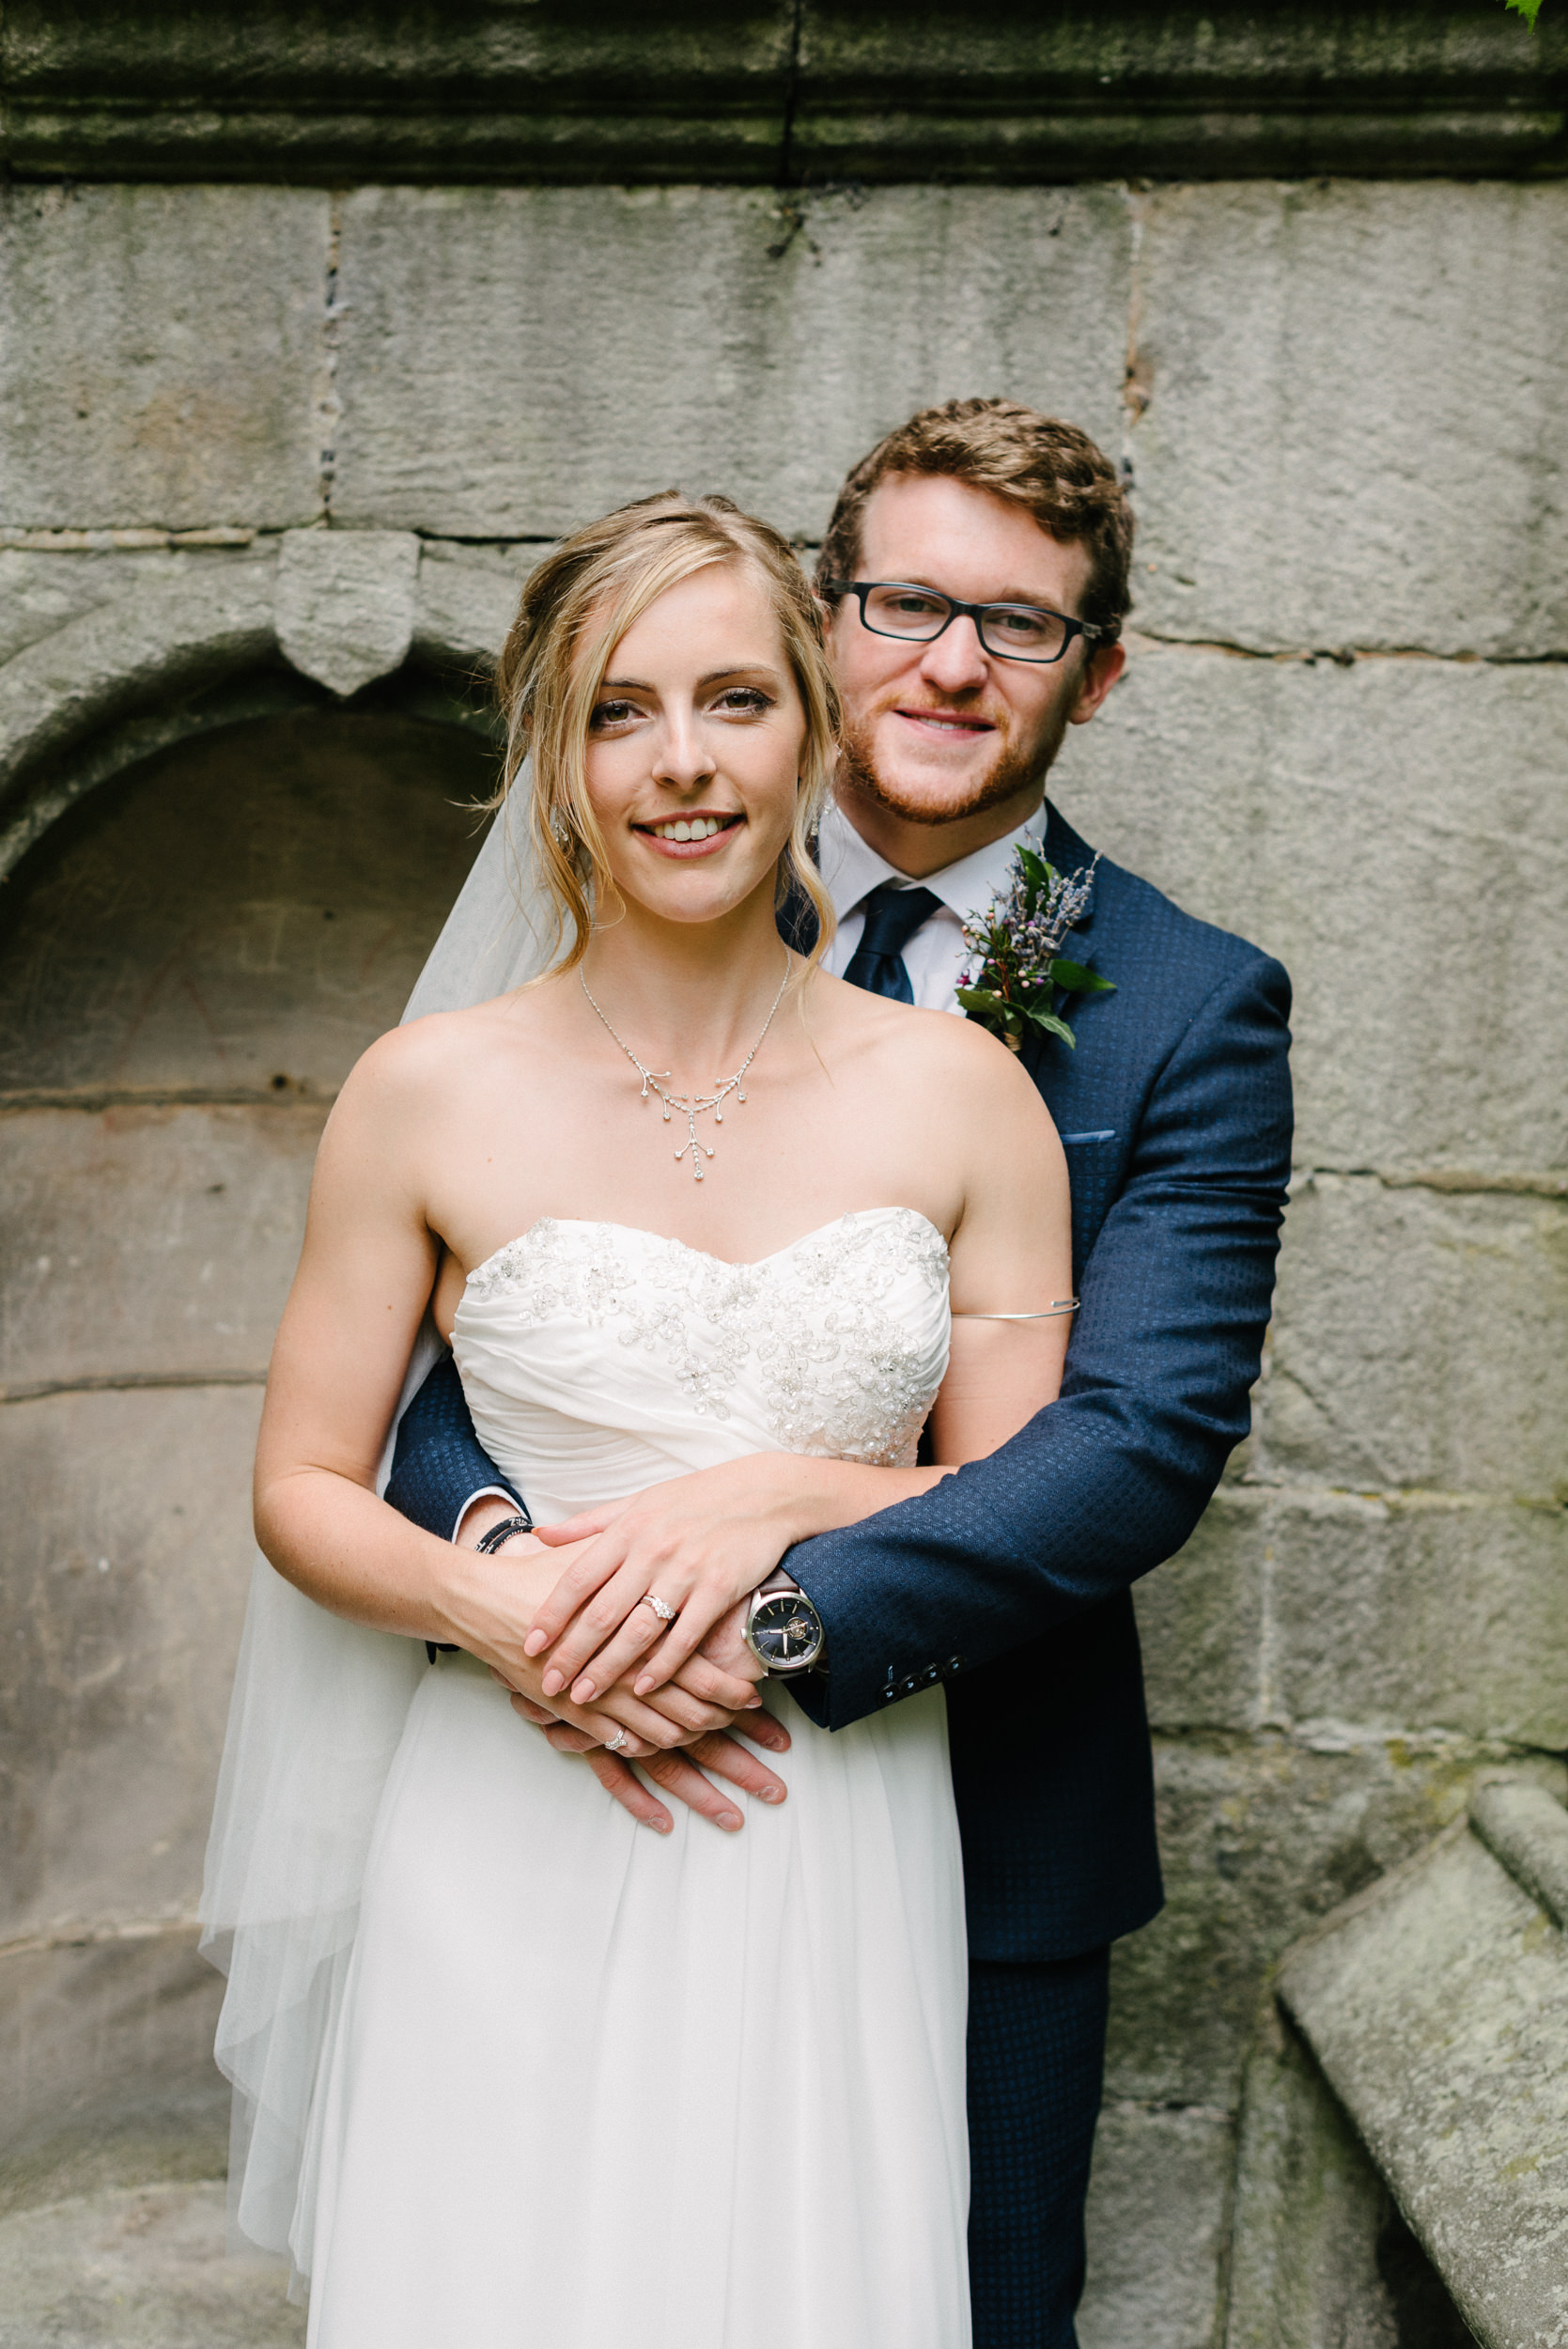 Bride and groom on their wedding day at Risley Hall